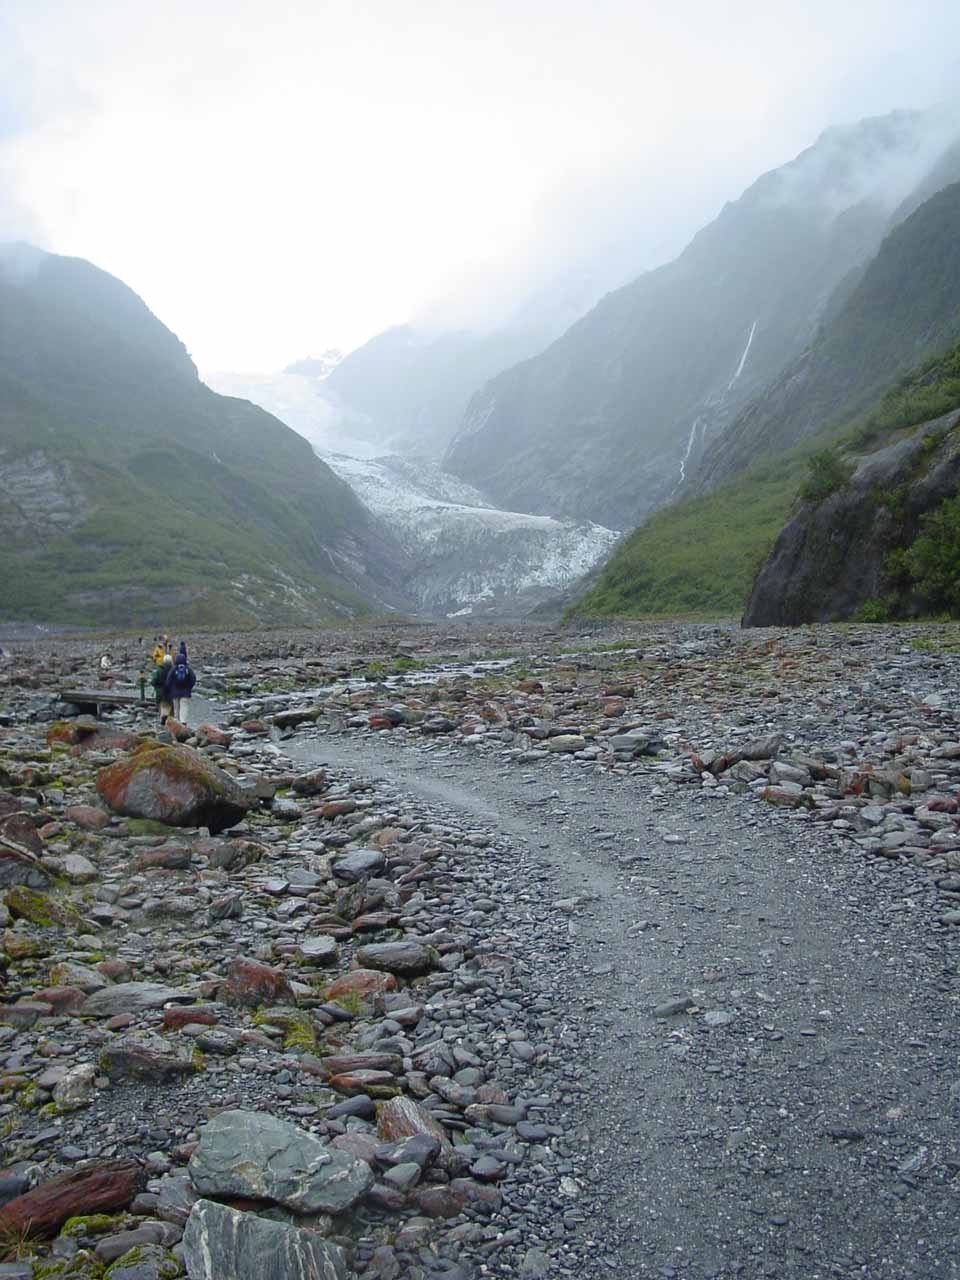 Following the trail towards the terminus of the Franz Josef Glacier